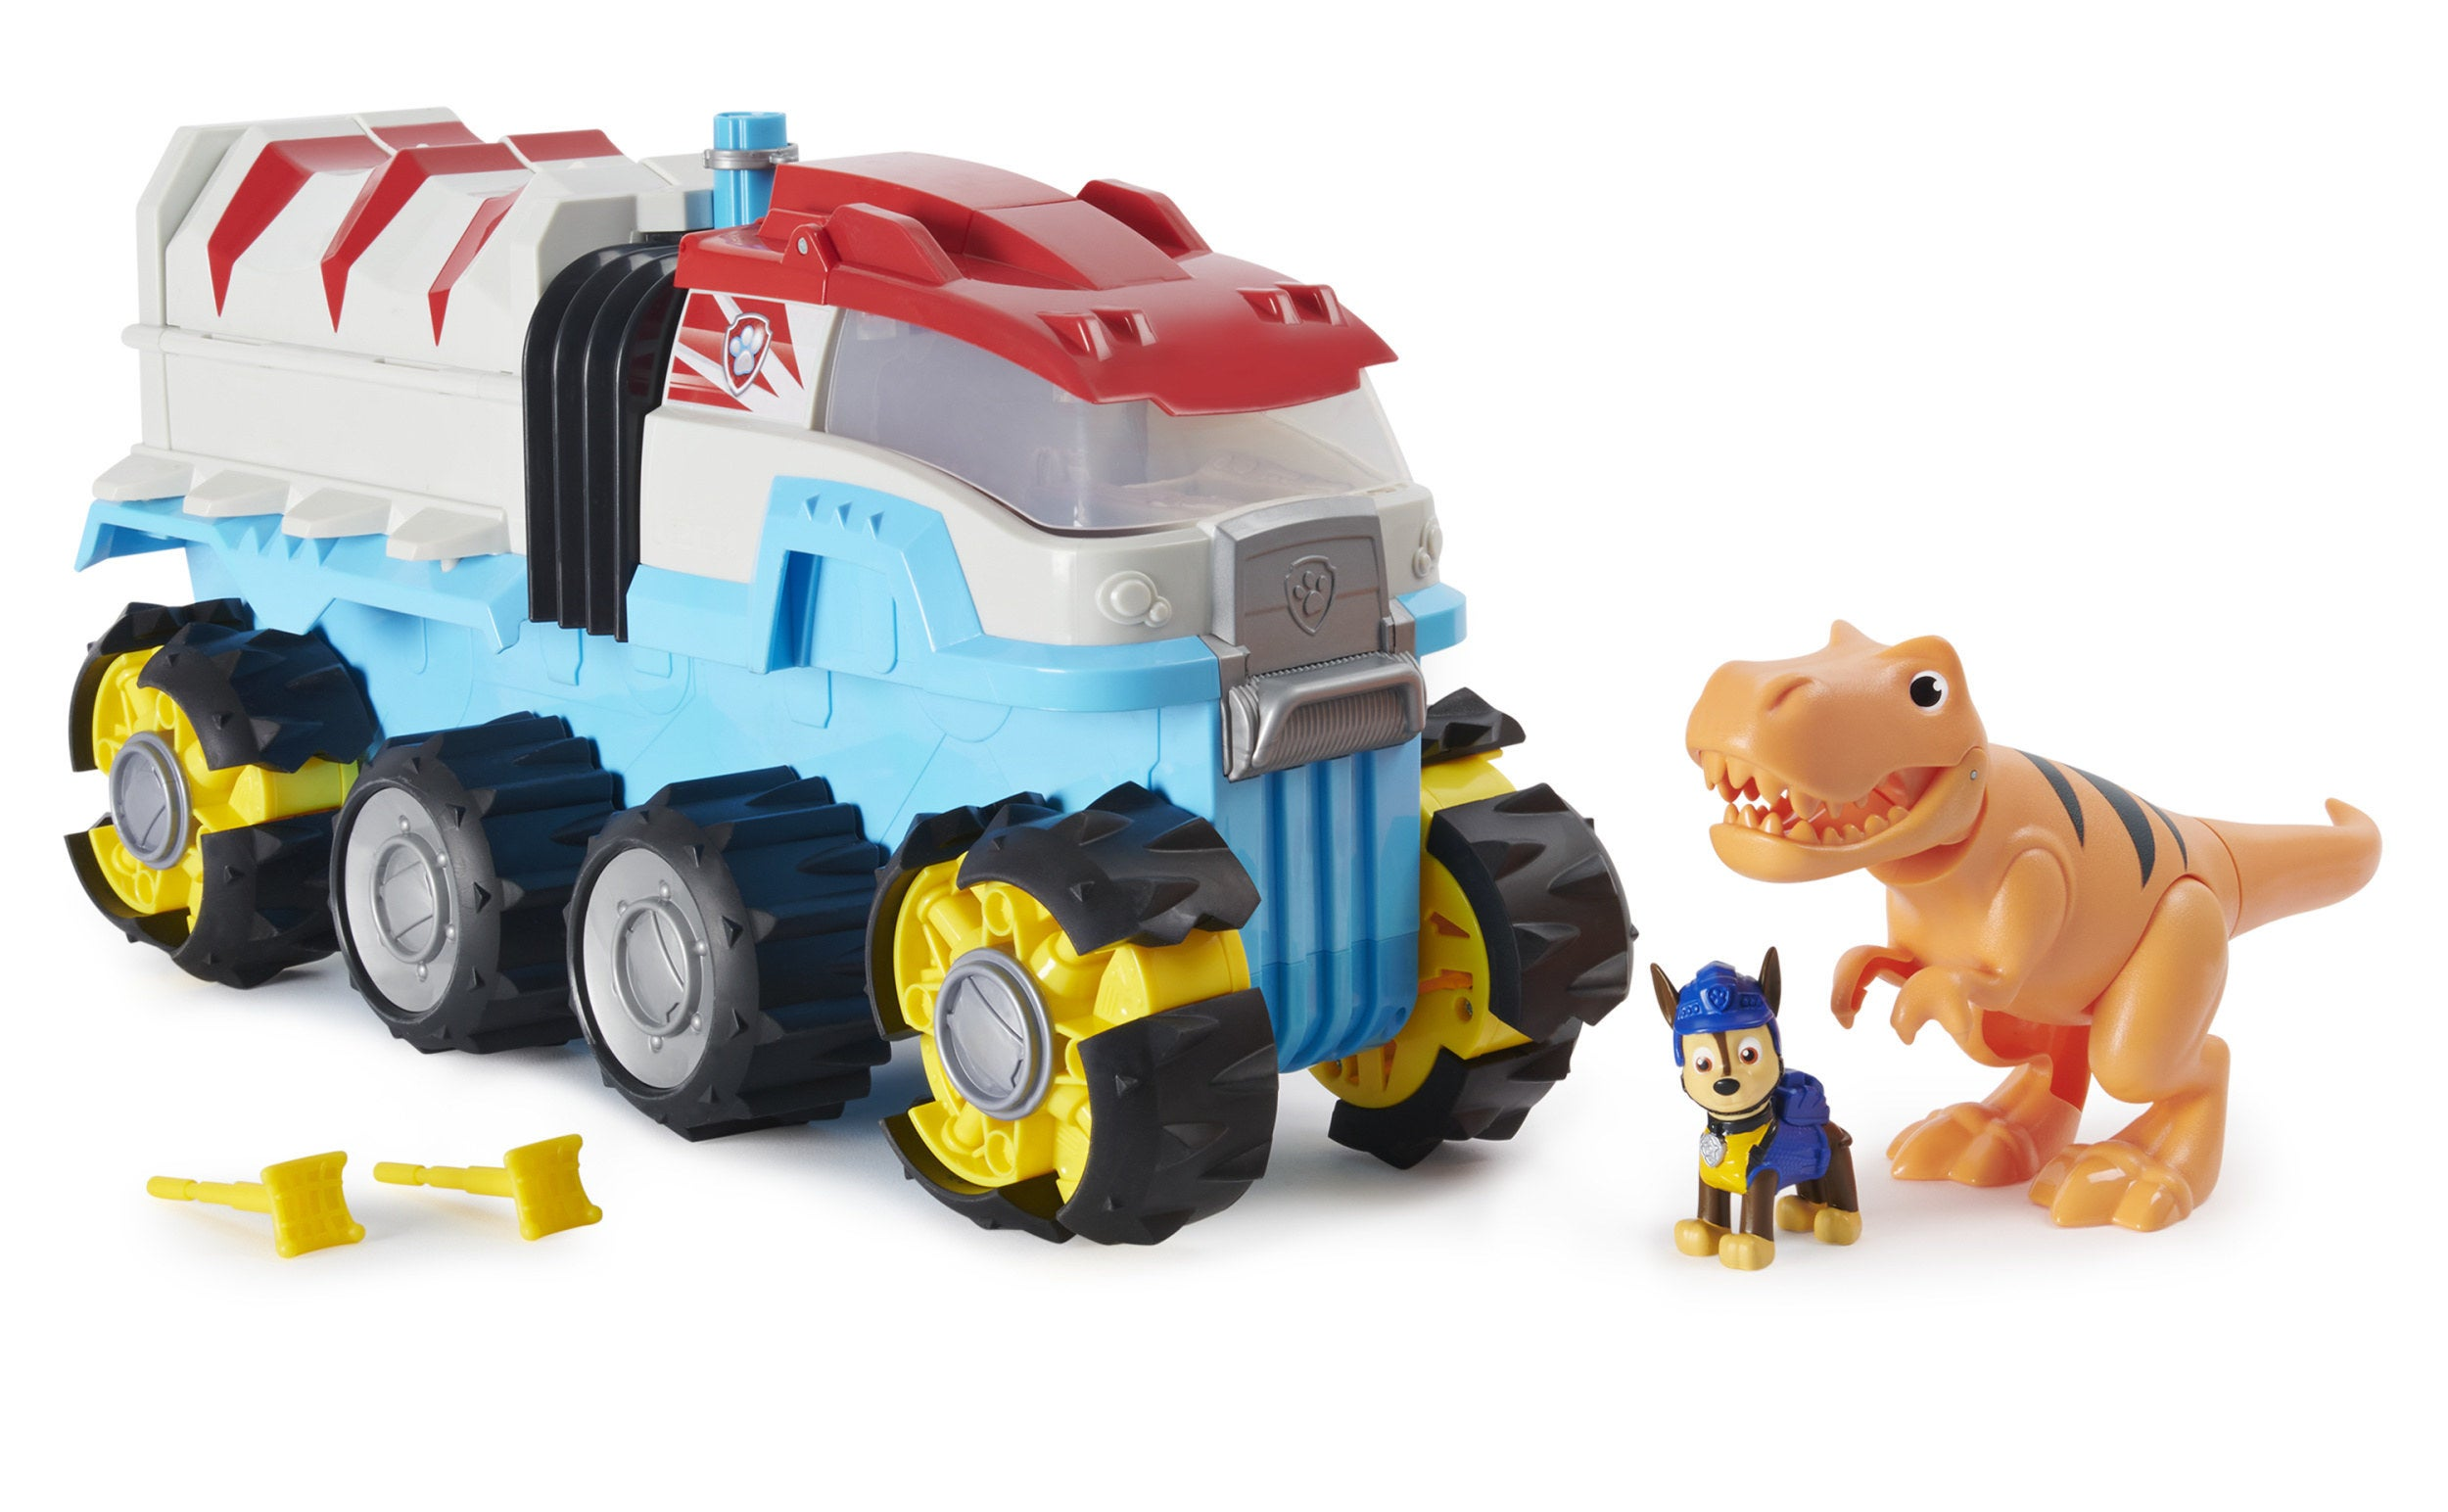 a paw patrol vehicle with a chase and t rex figurine